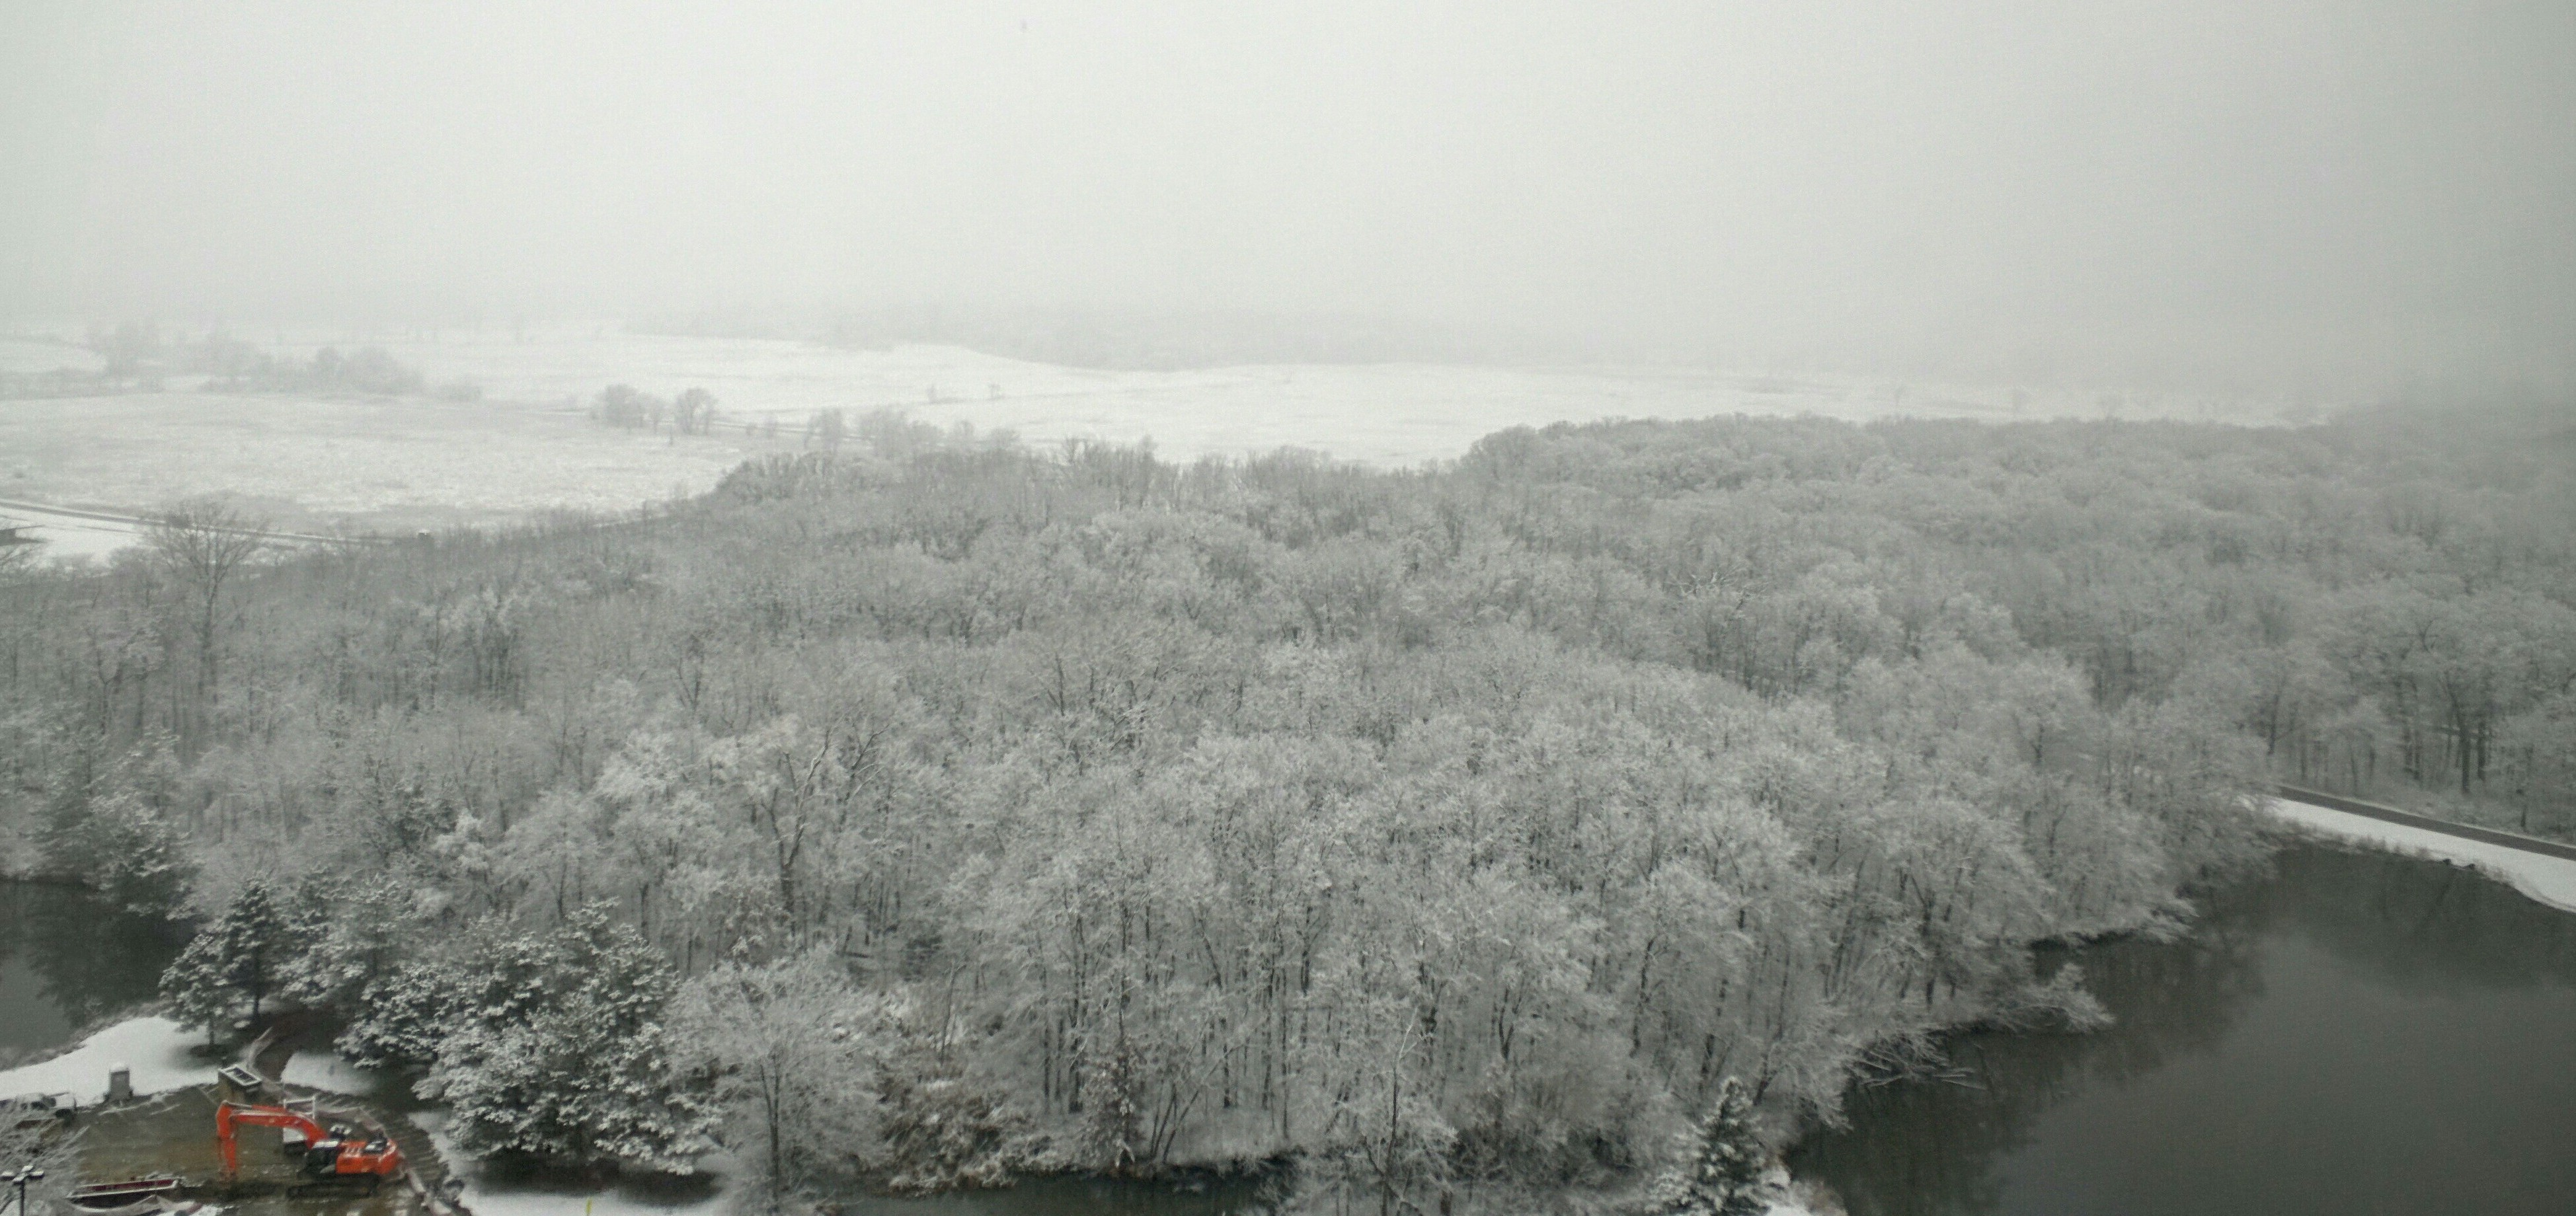 You can see the fabled frosted forest from the 15th floor. Photo: Valery Stanley, WDRS